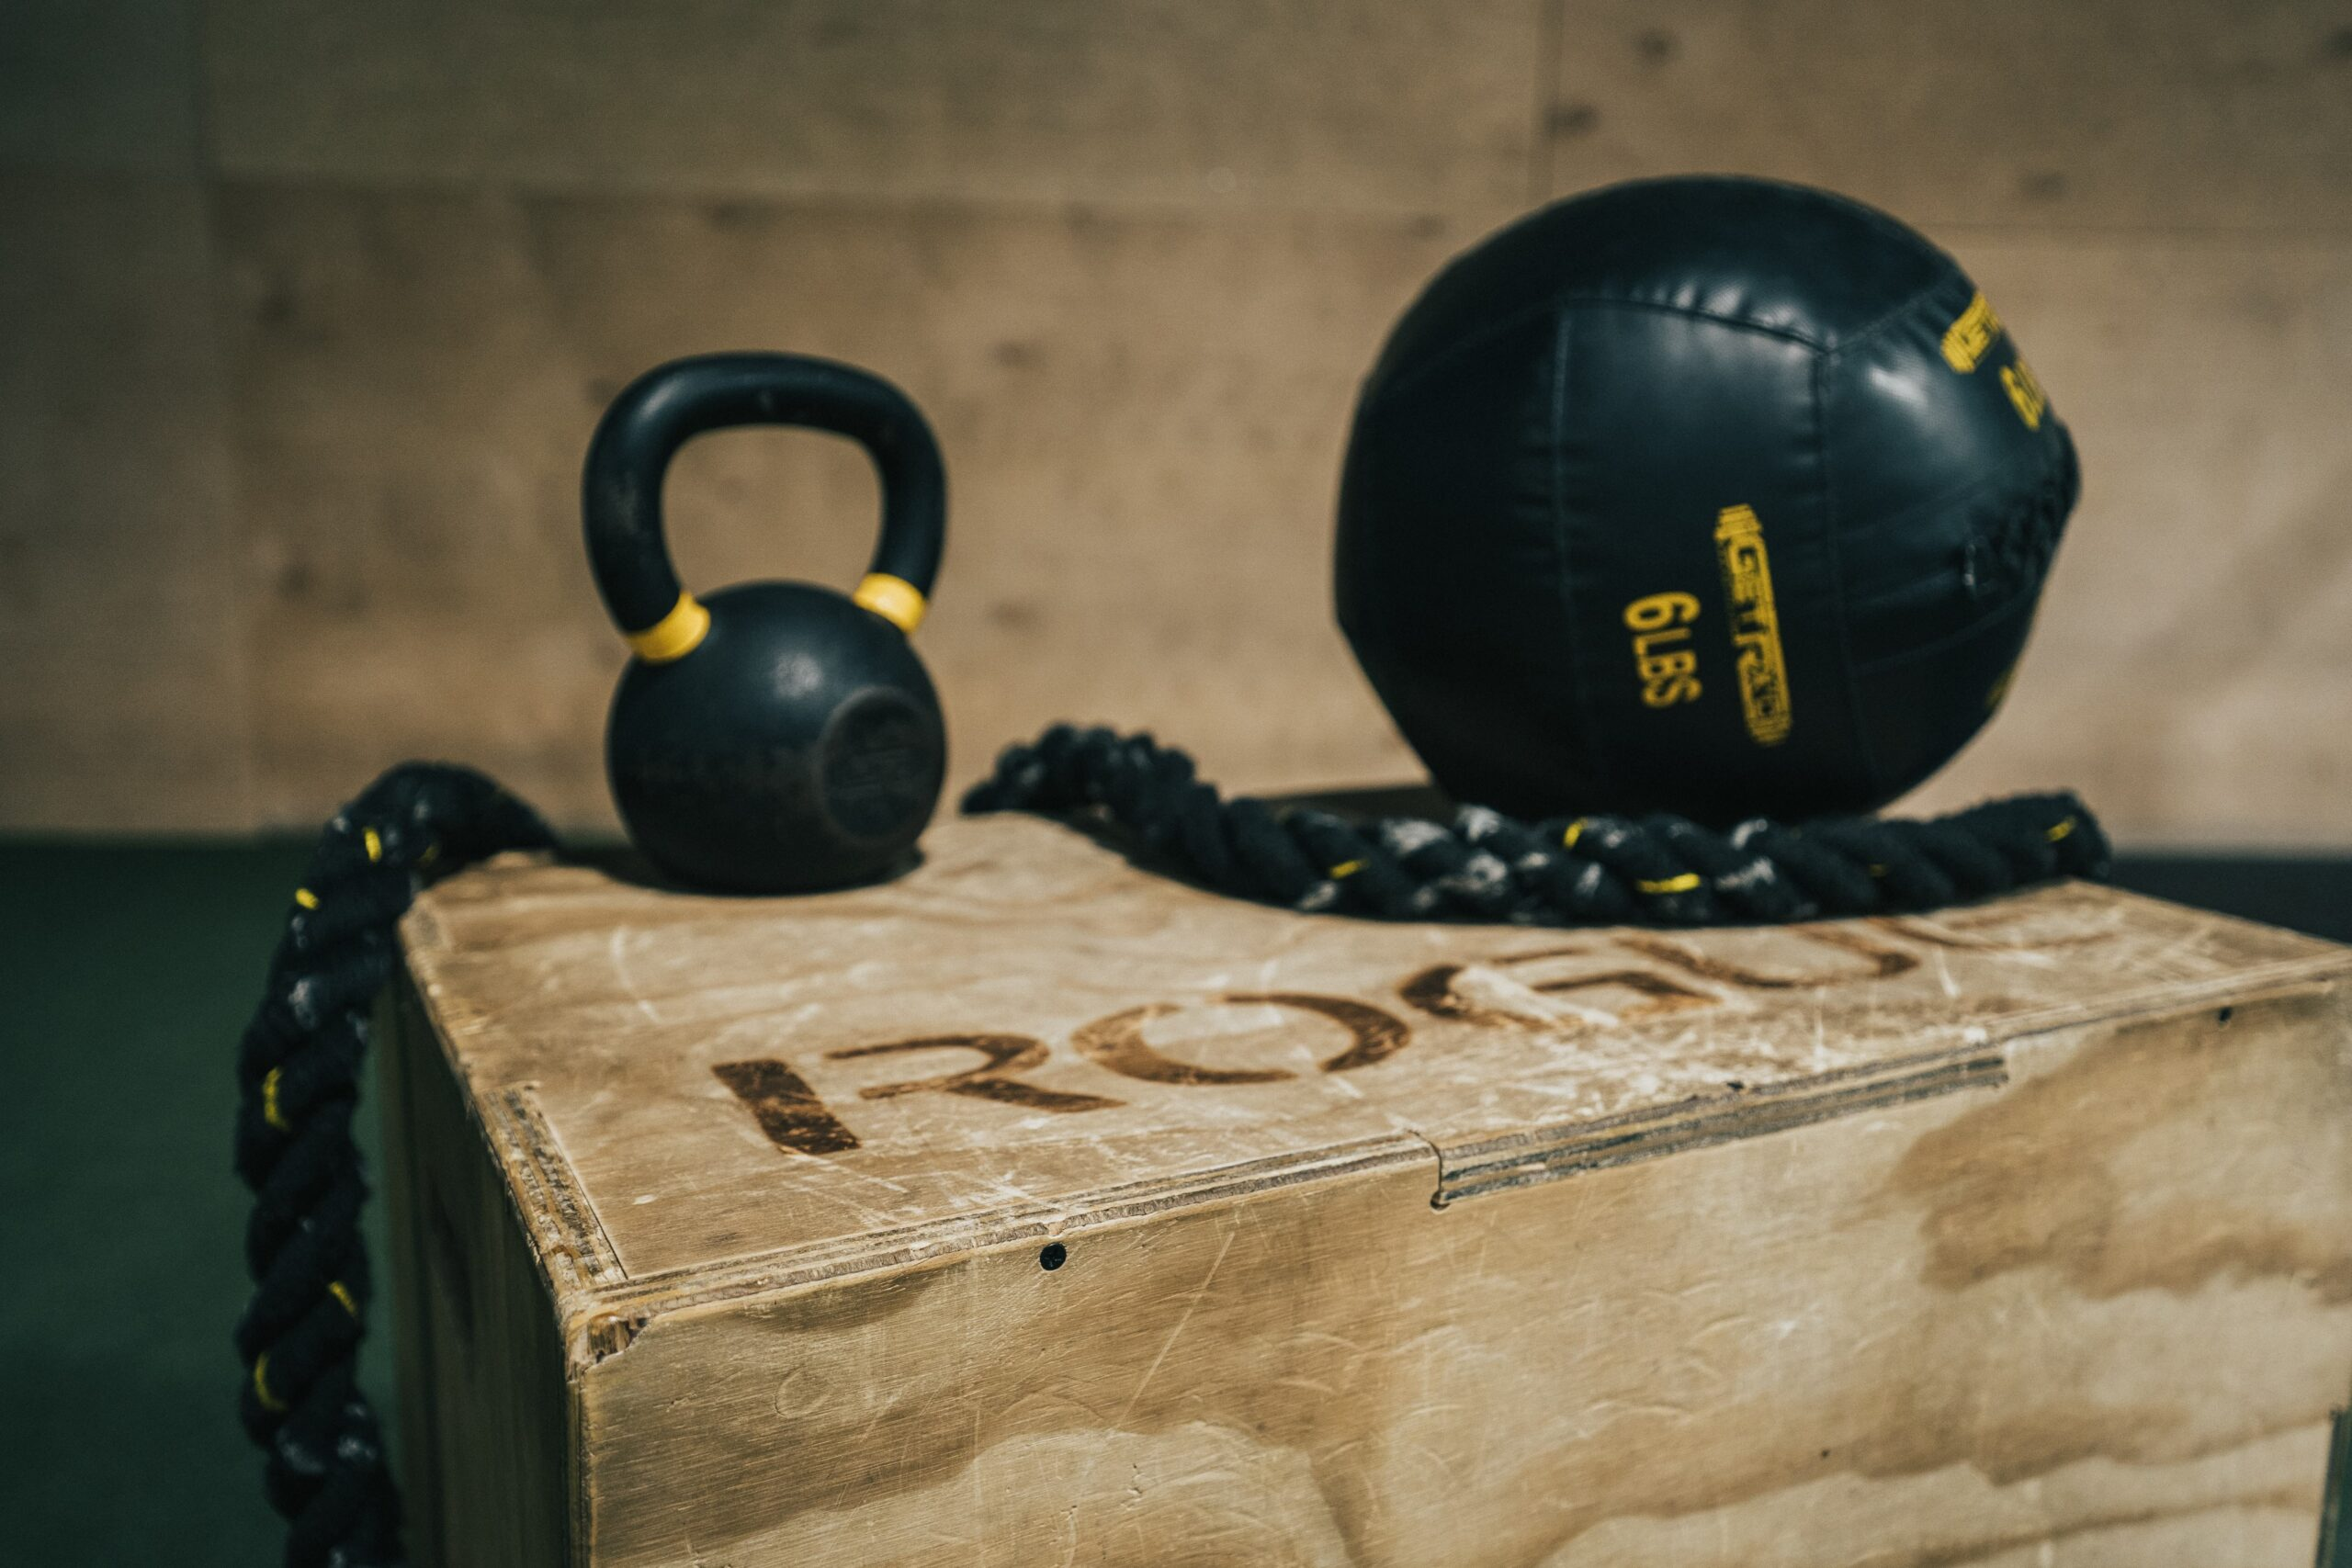 HIIT workout gear sitting on a box for crossfit